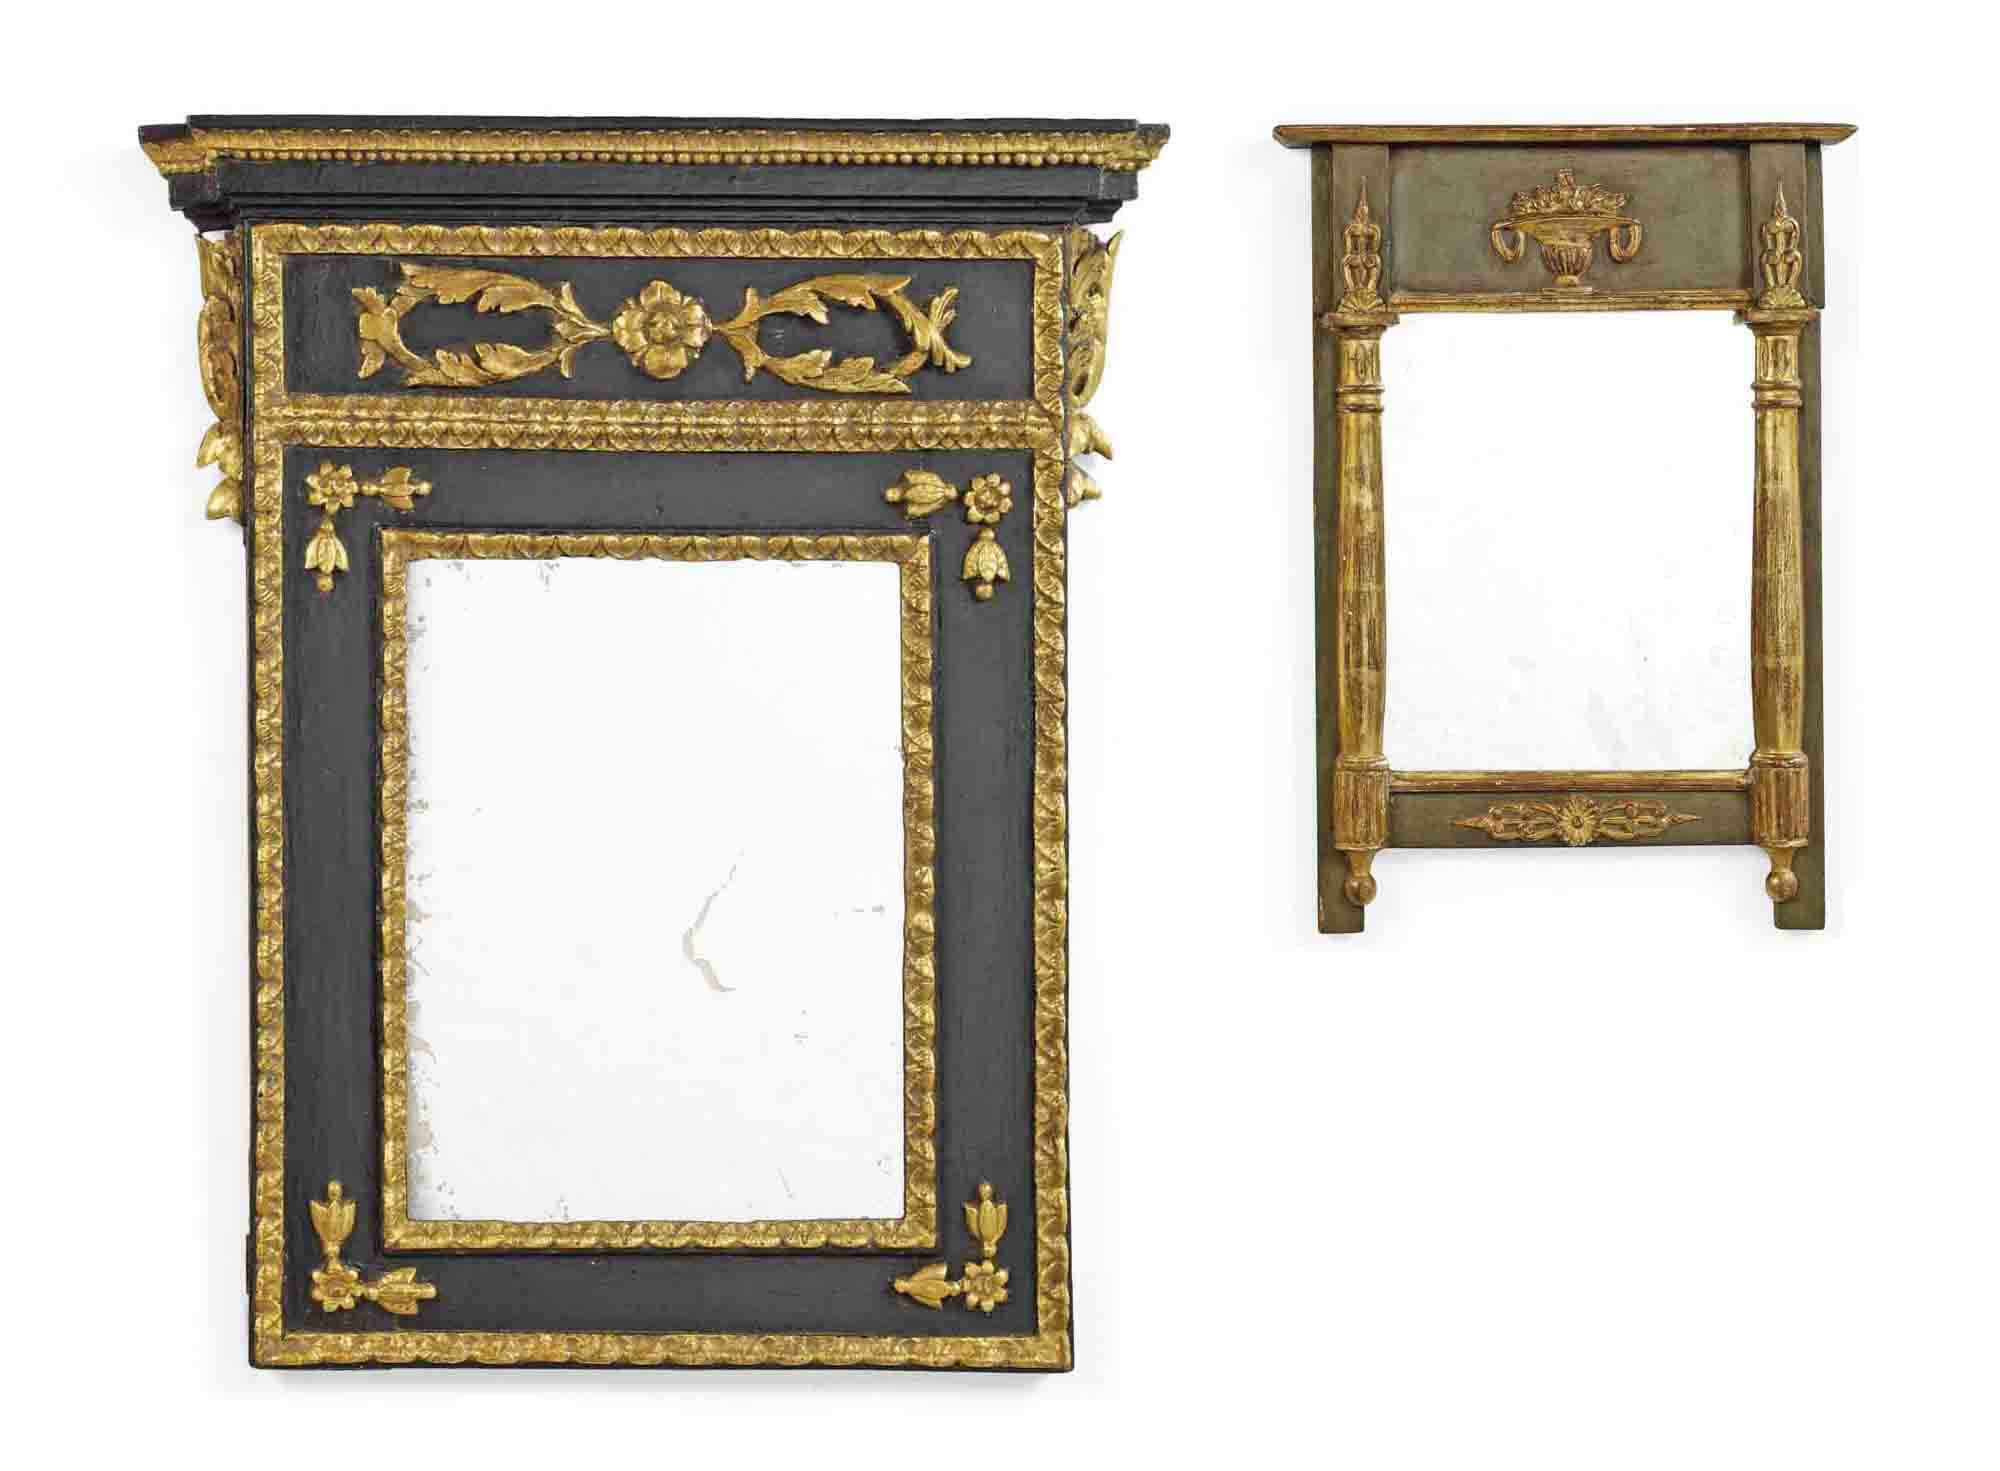 NORTH ITALIAN PARCEL-GILT AND BLACK PAINTED MIRROR